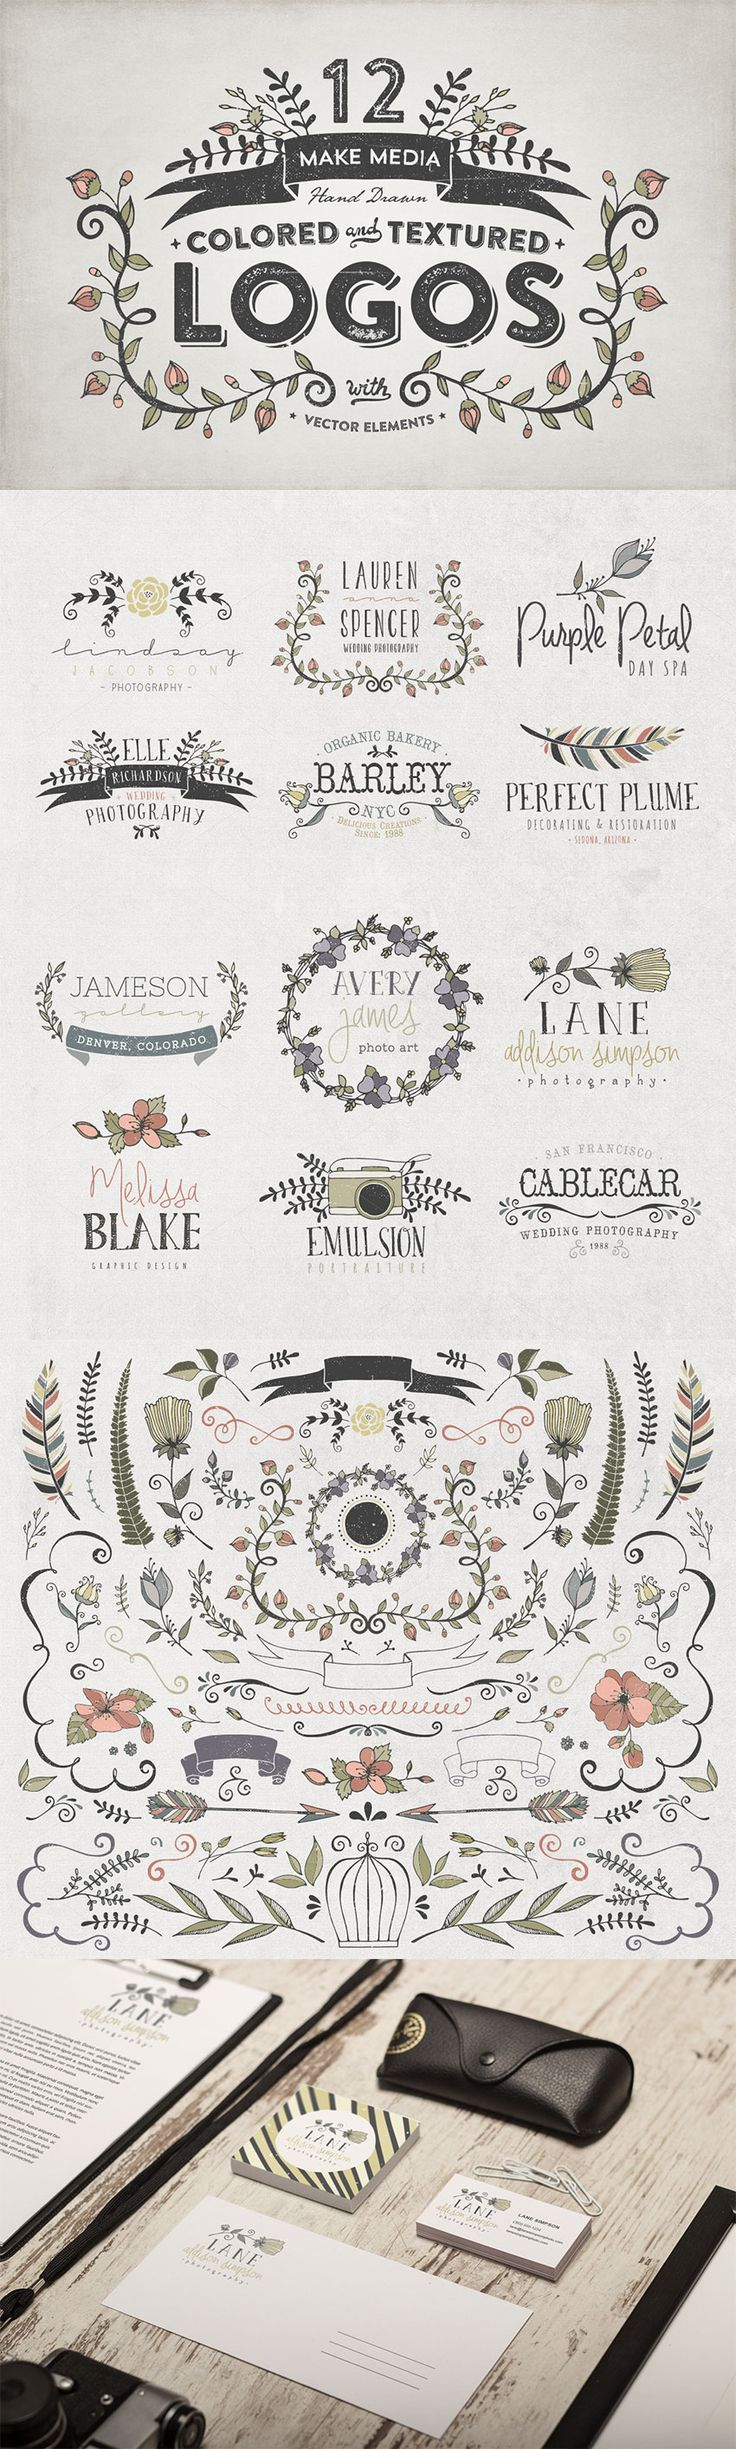 The Hand Drawn Logo Trio (and Bonus Decorative Elements) - Only $19 | MyDesignDeals